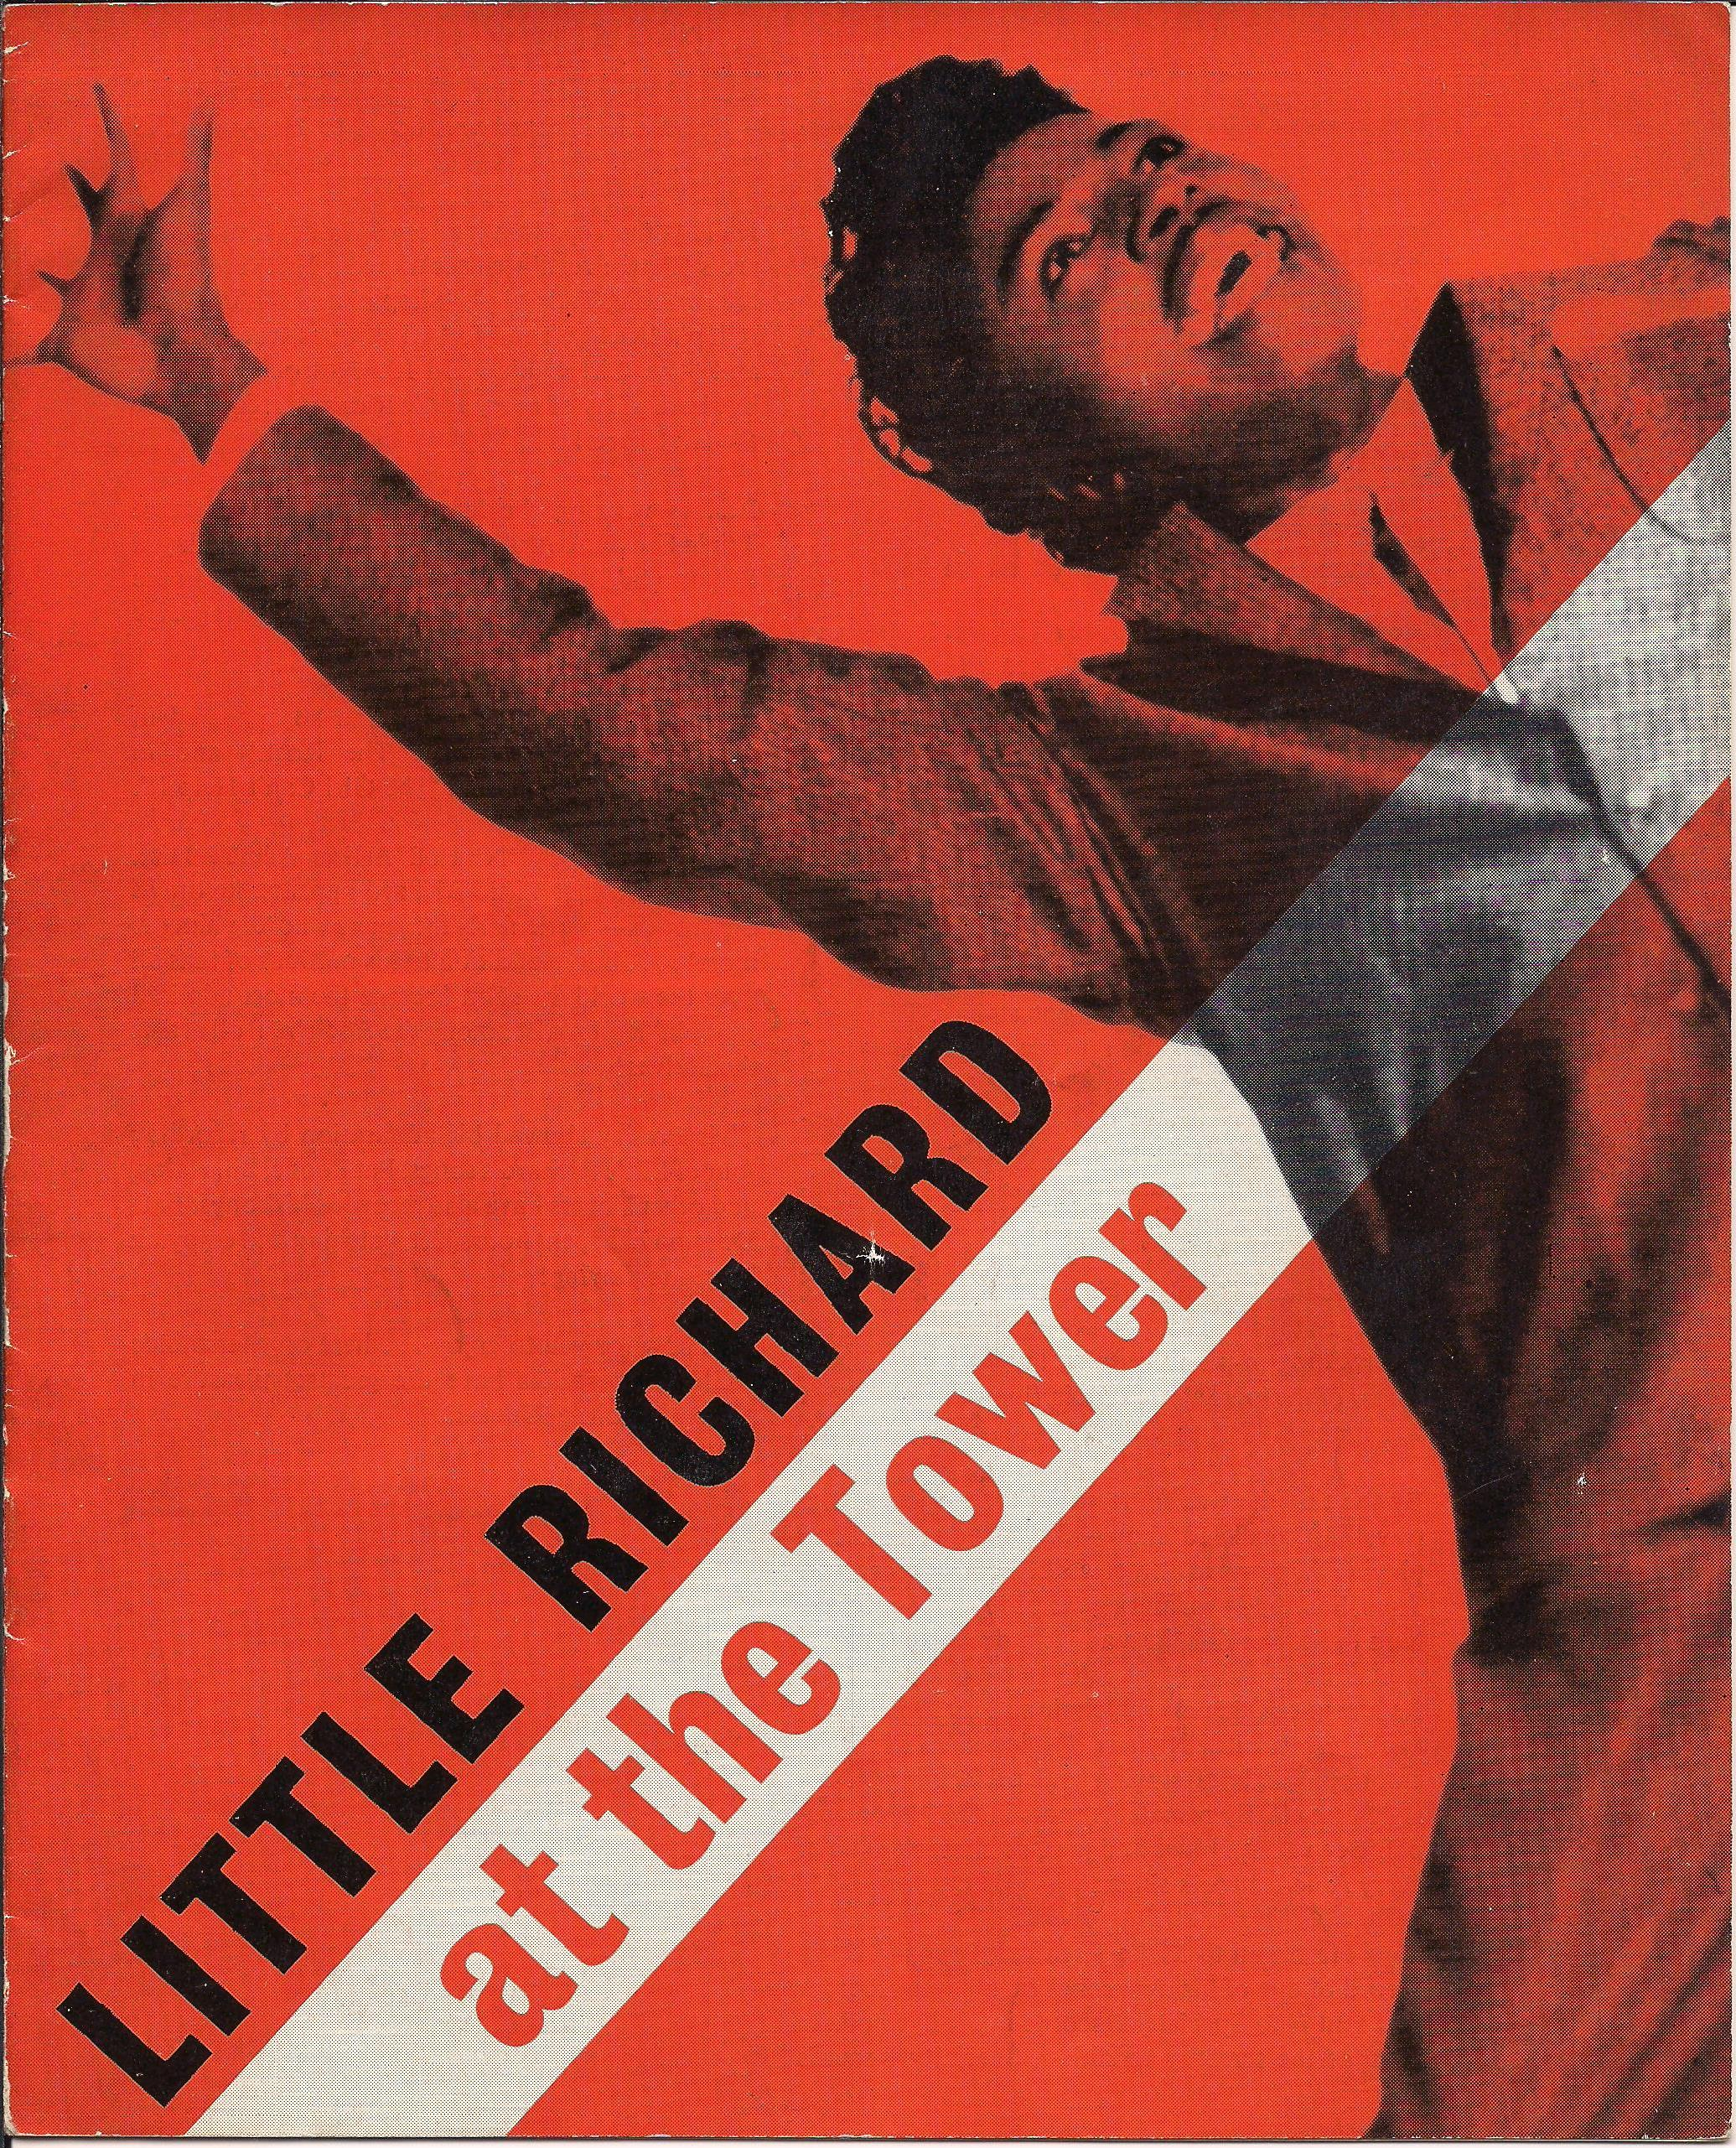 Beatles-Little Richard Tower Ballroom program Oct. 1962